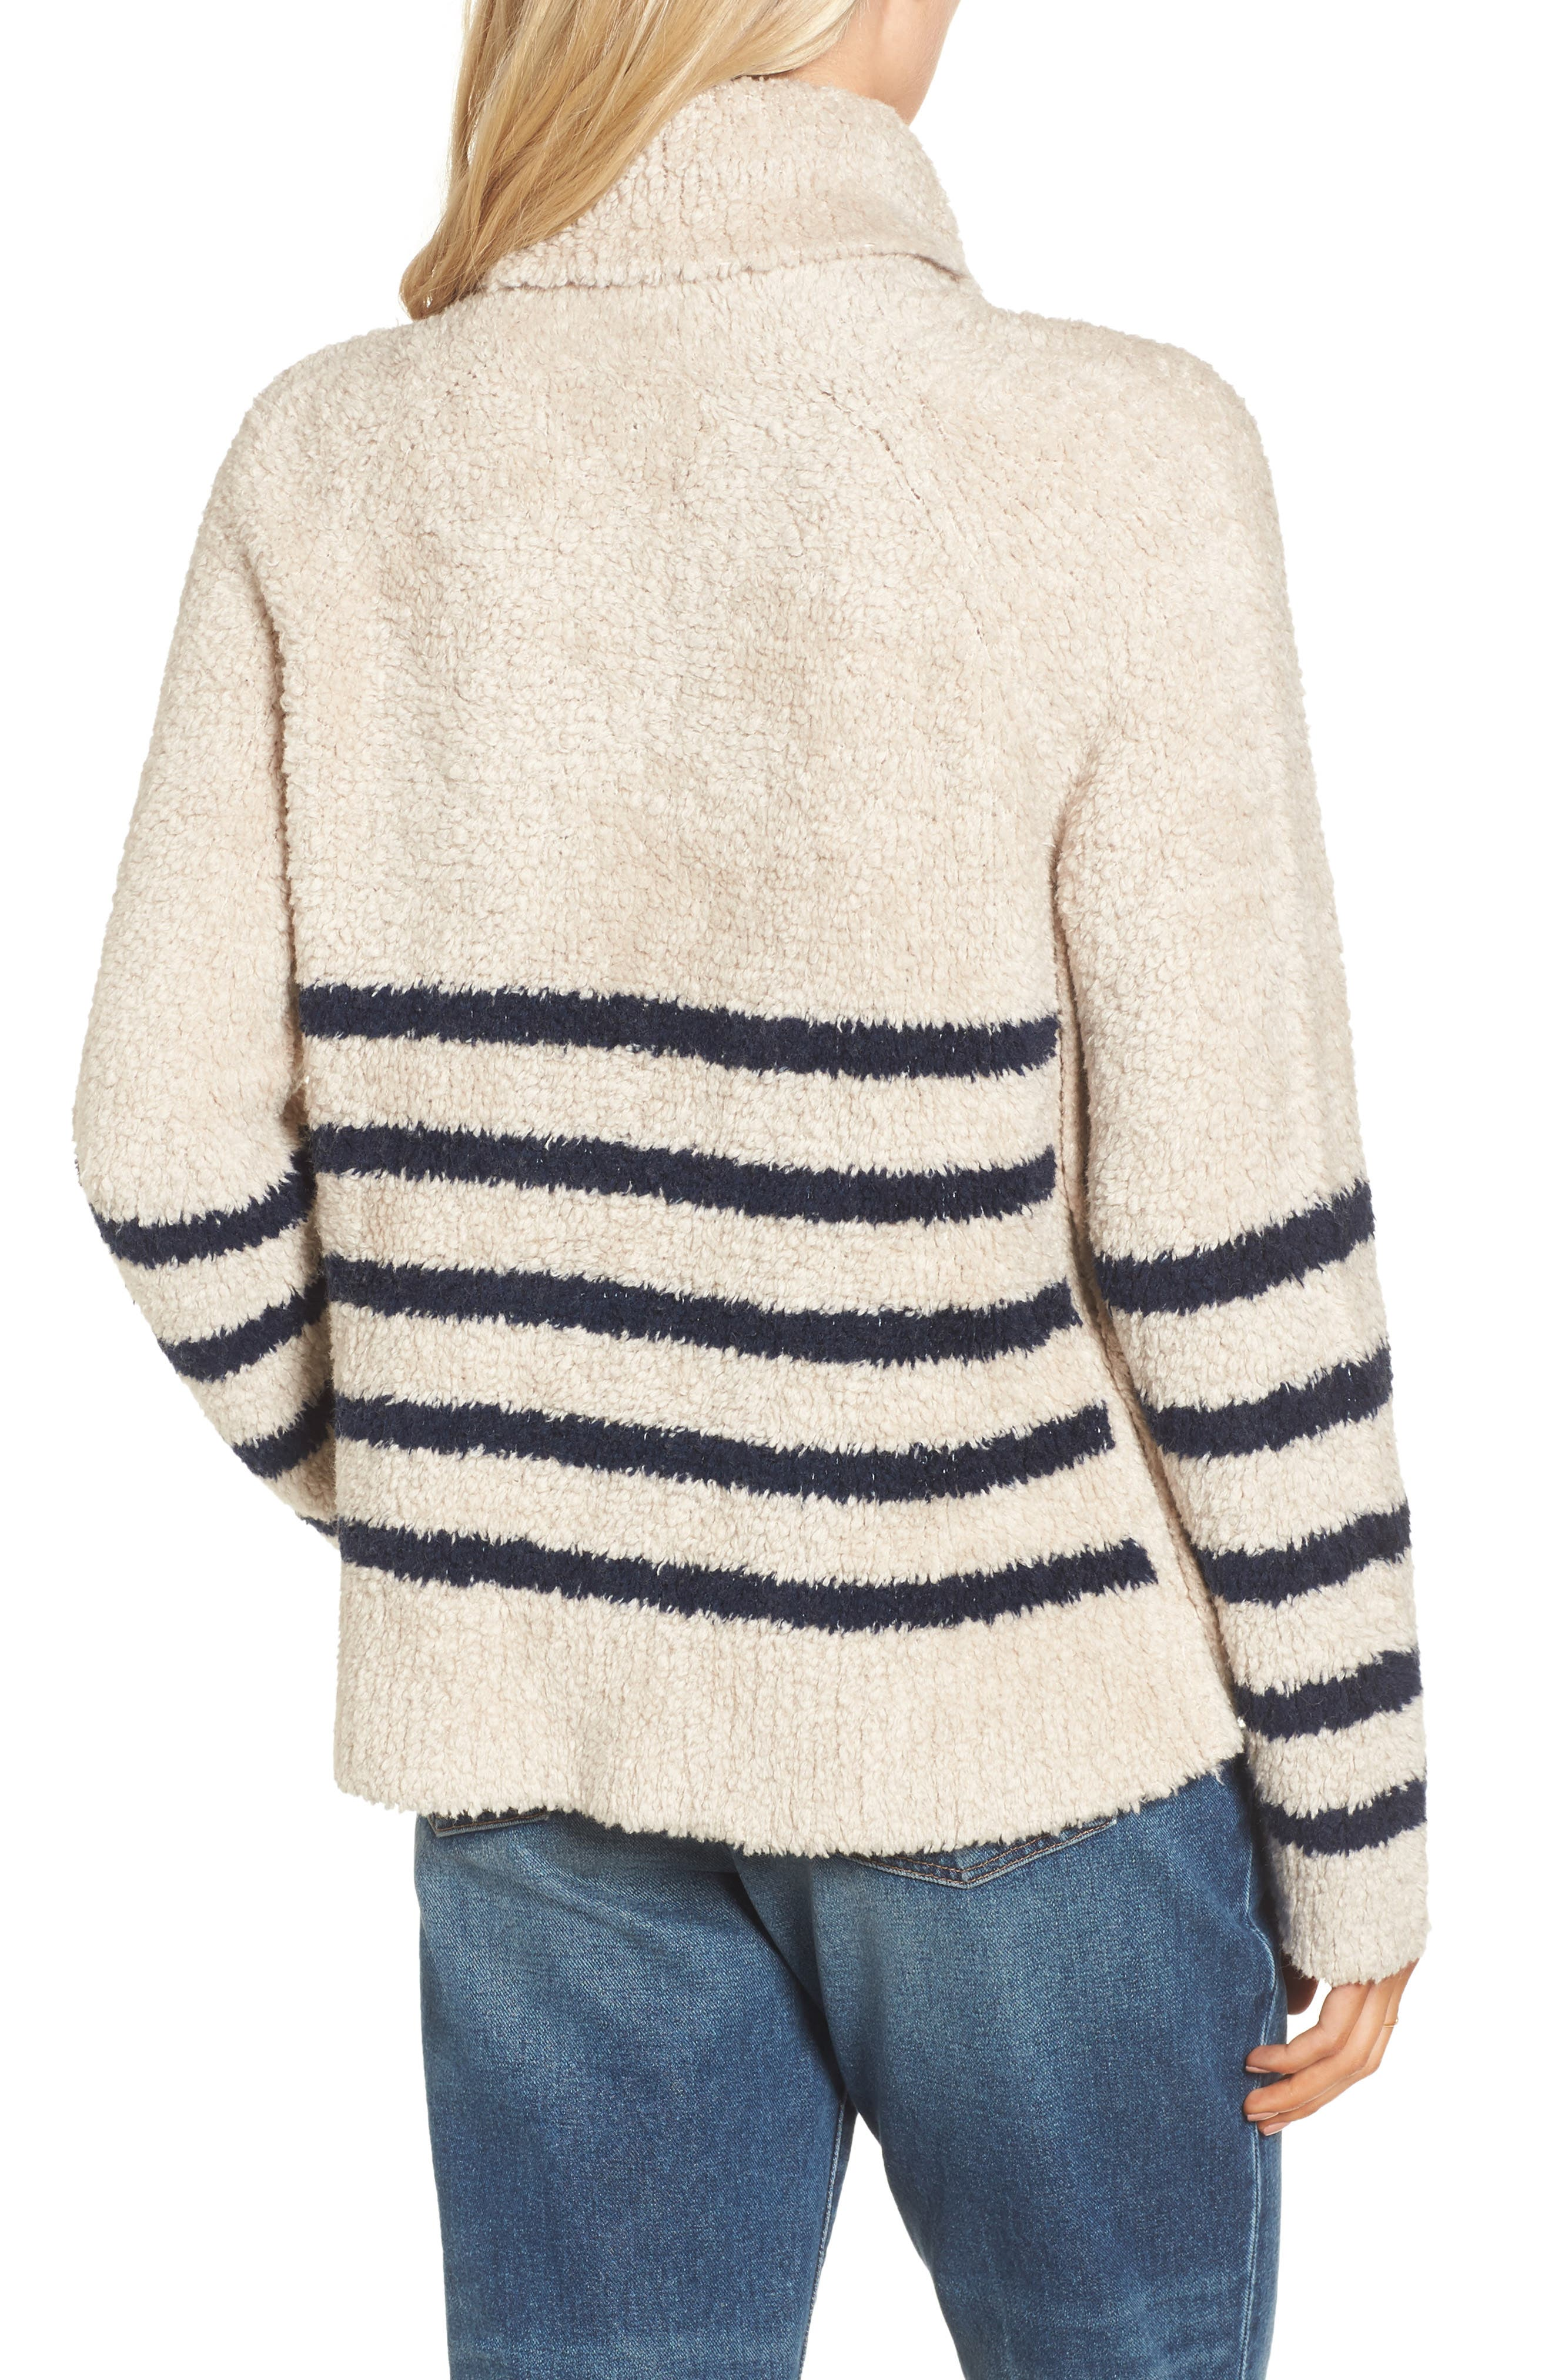 Mariner Stripe Turtleneck Sweater,                             Alternate thumbnail 2, color,                             Cloud Lining